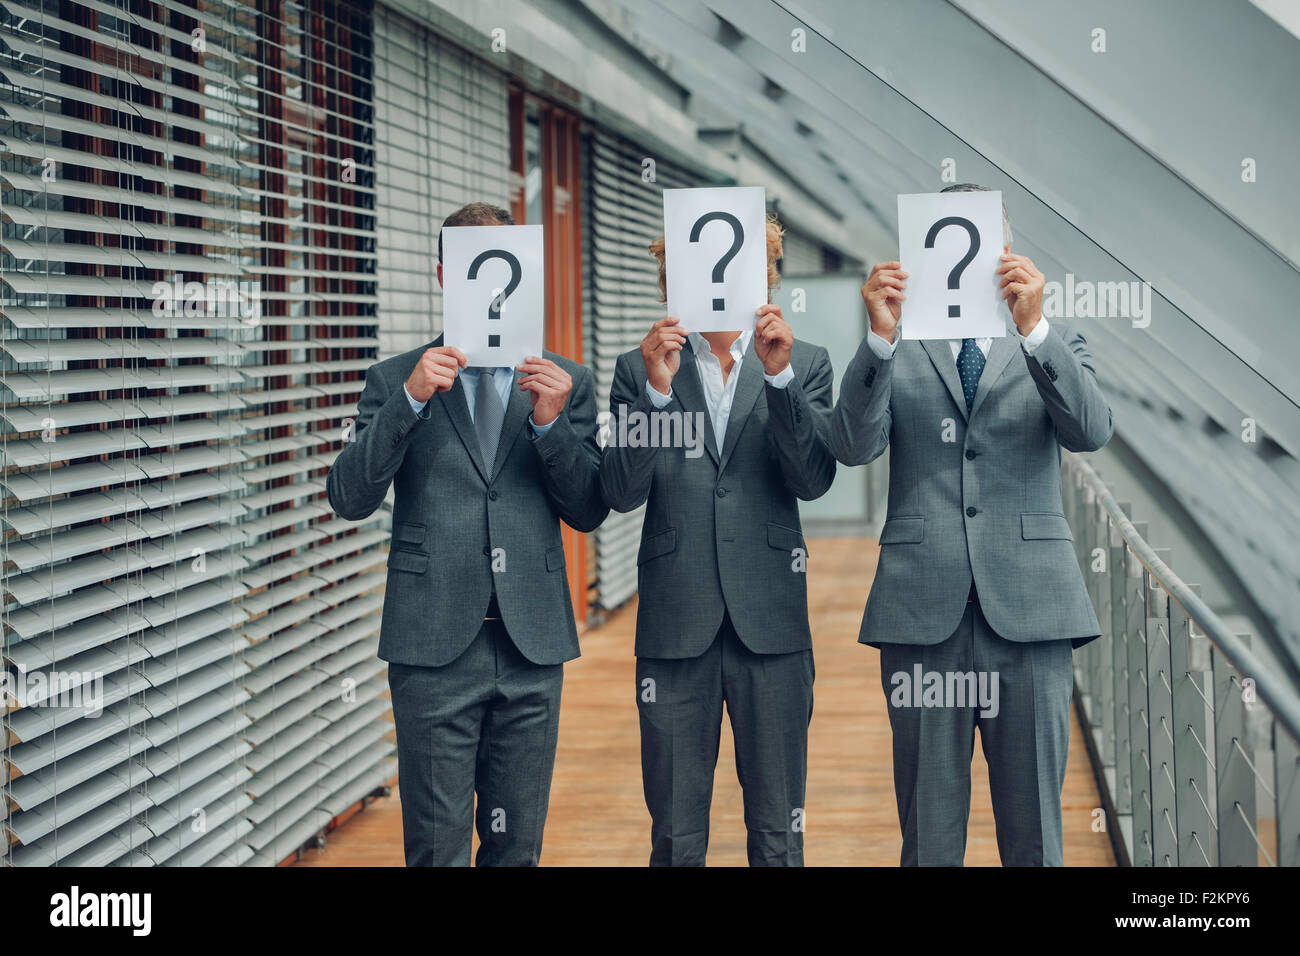 Business people with question mark on placards - Stock Image